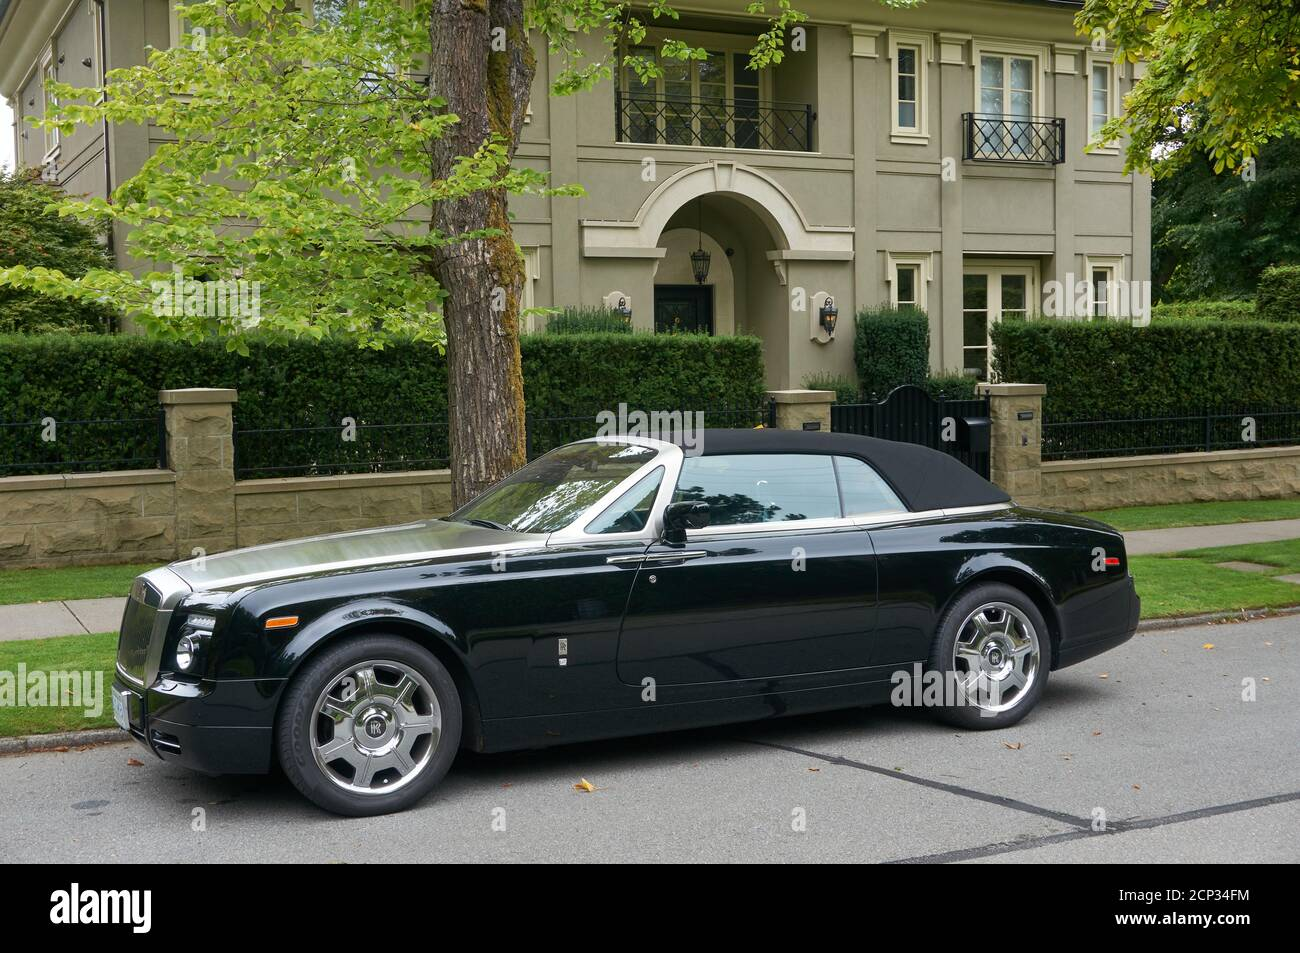 black-rolls-royce-convertible-parked-out